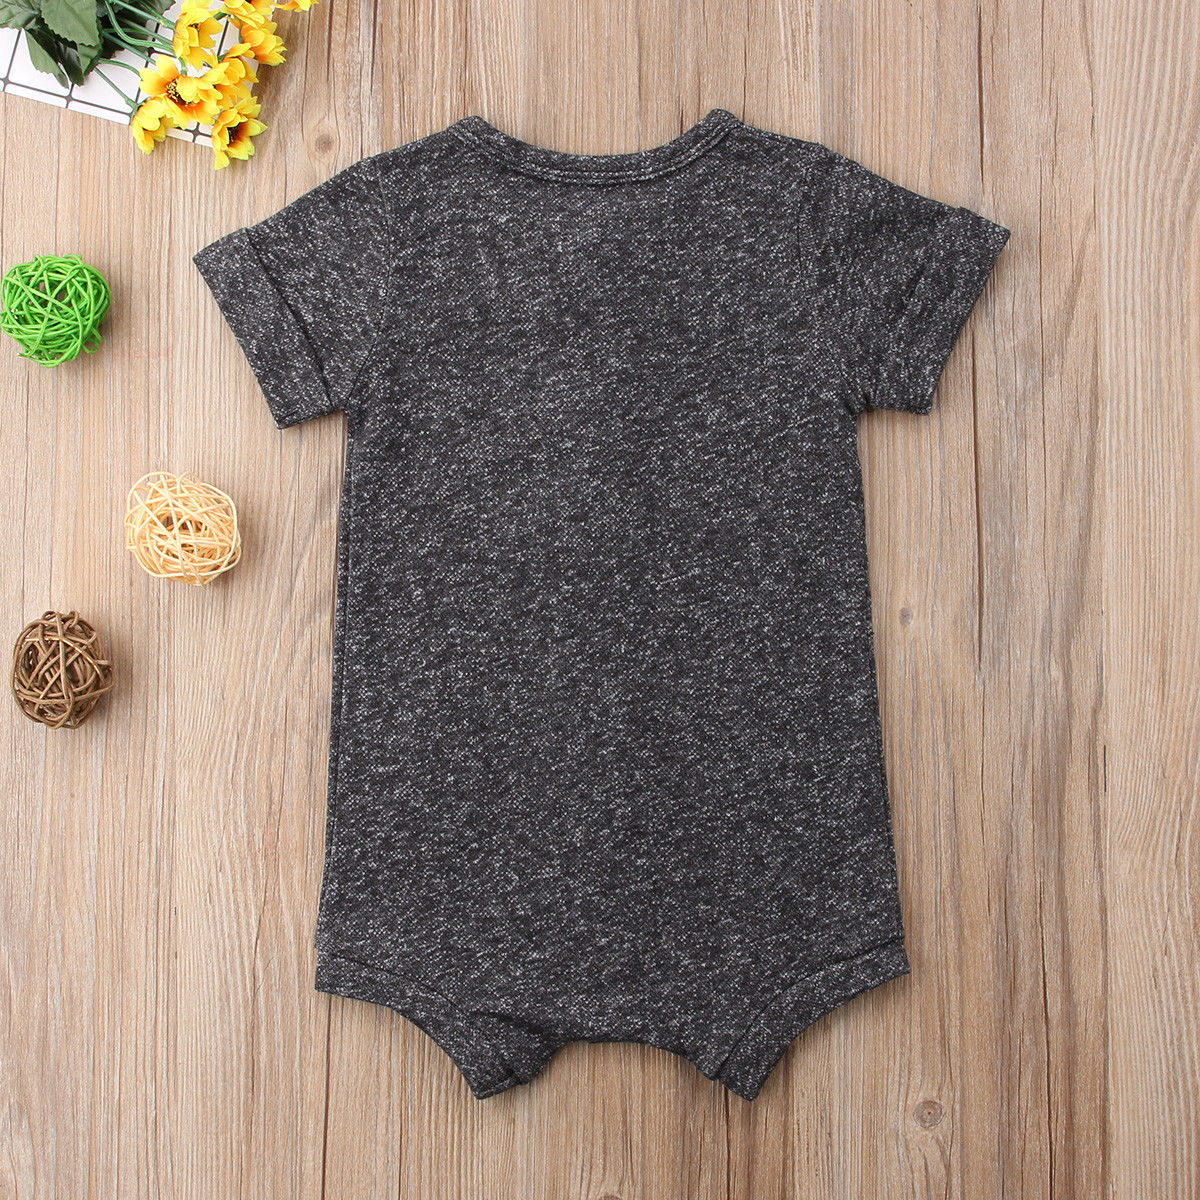 Cotton Short Sleeves Casual Romper Jumpsuit for Newborn Toddlers